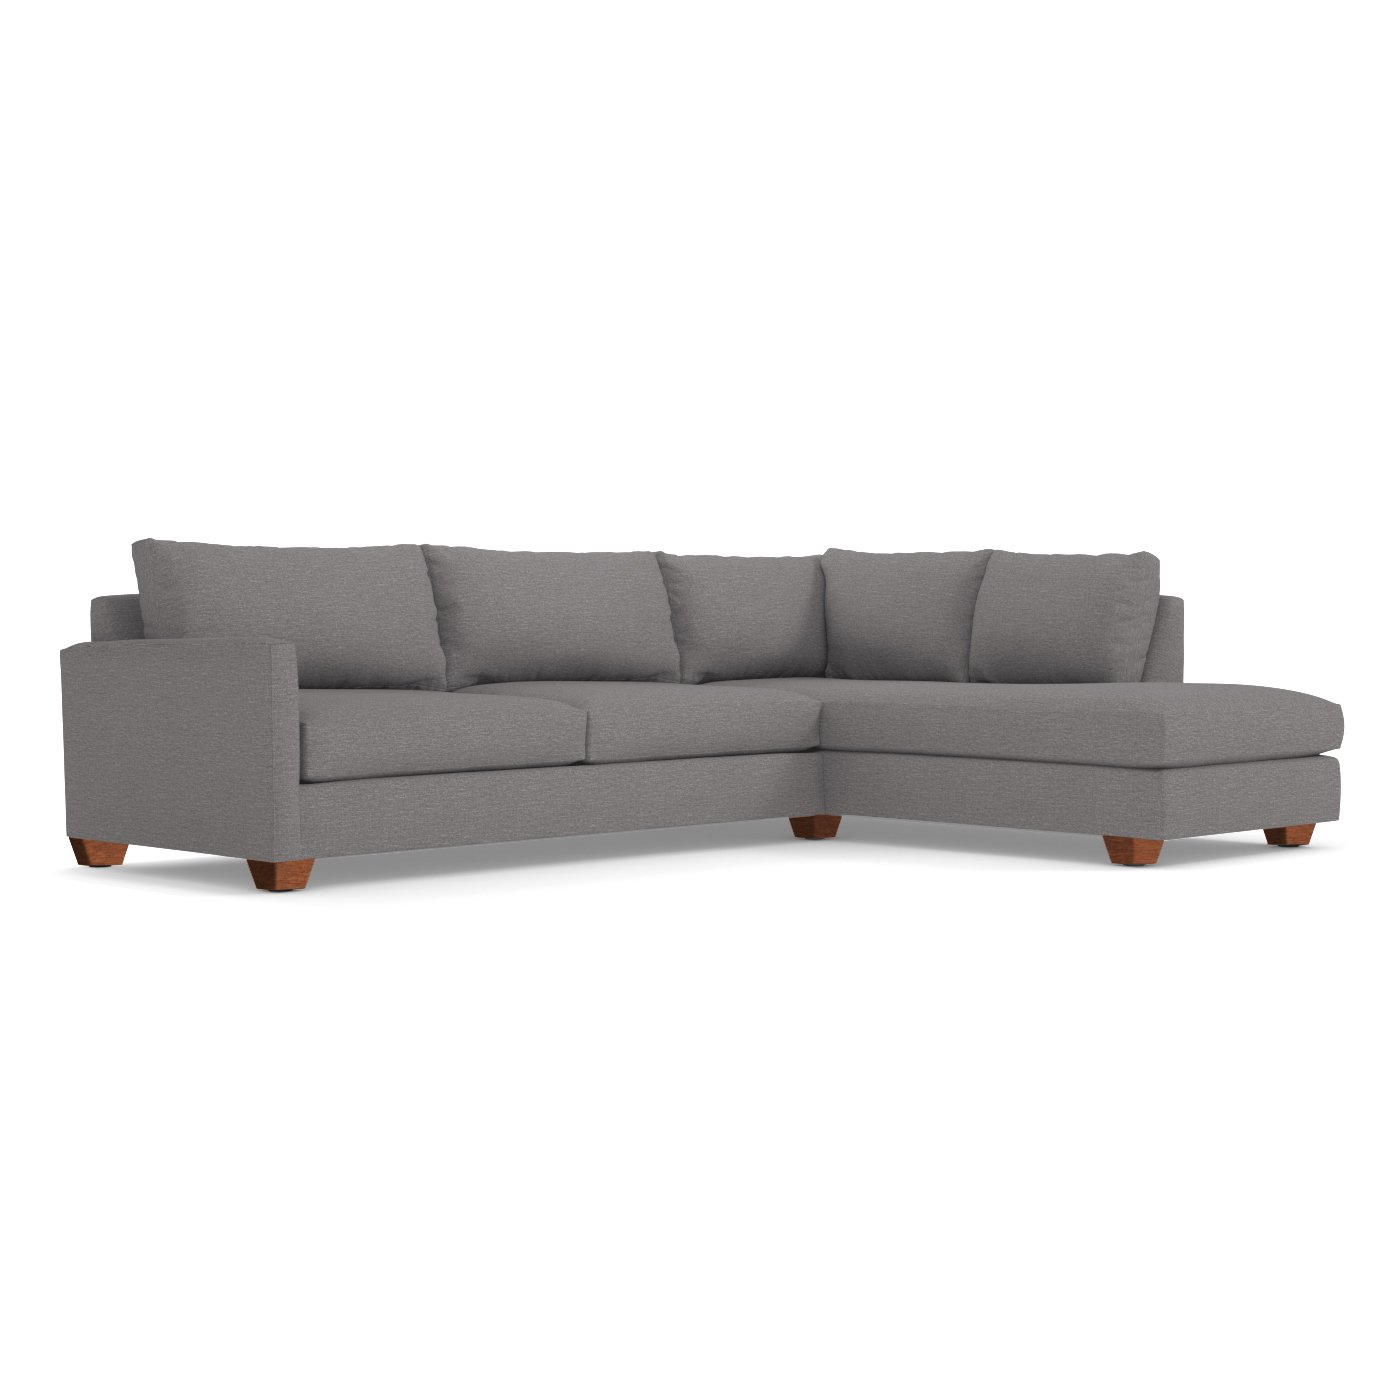 Tuxedo 2pc Sectional Sofa